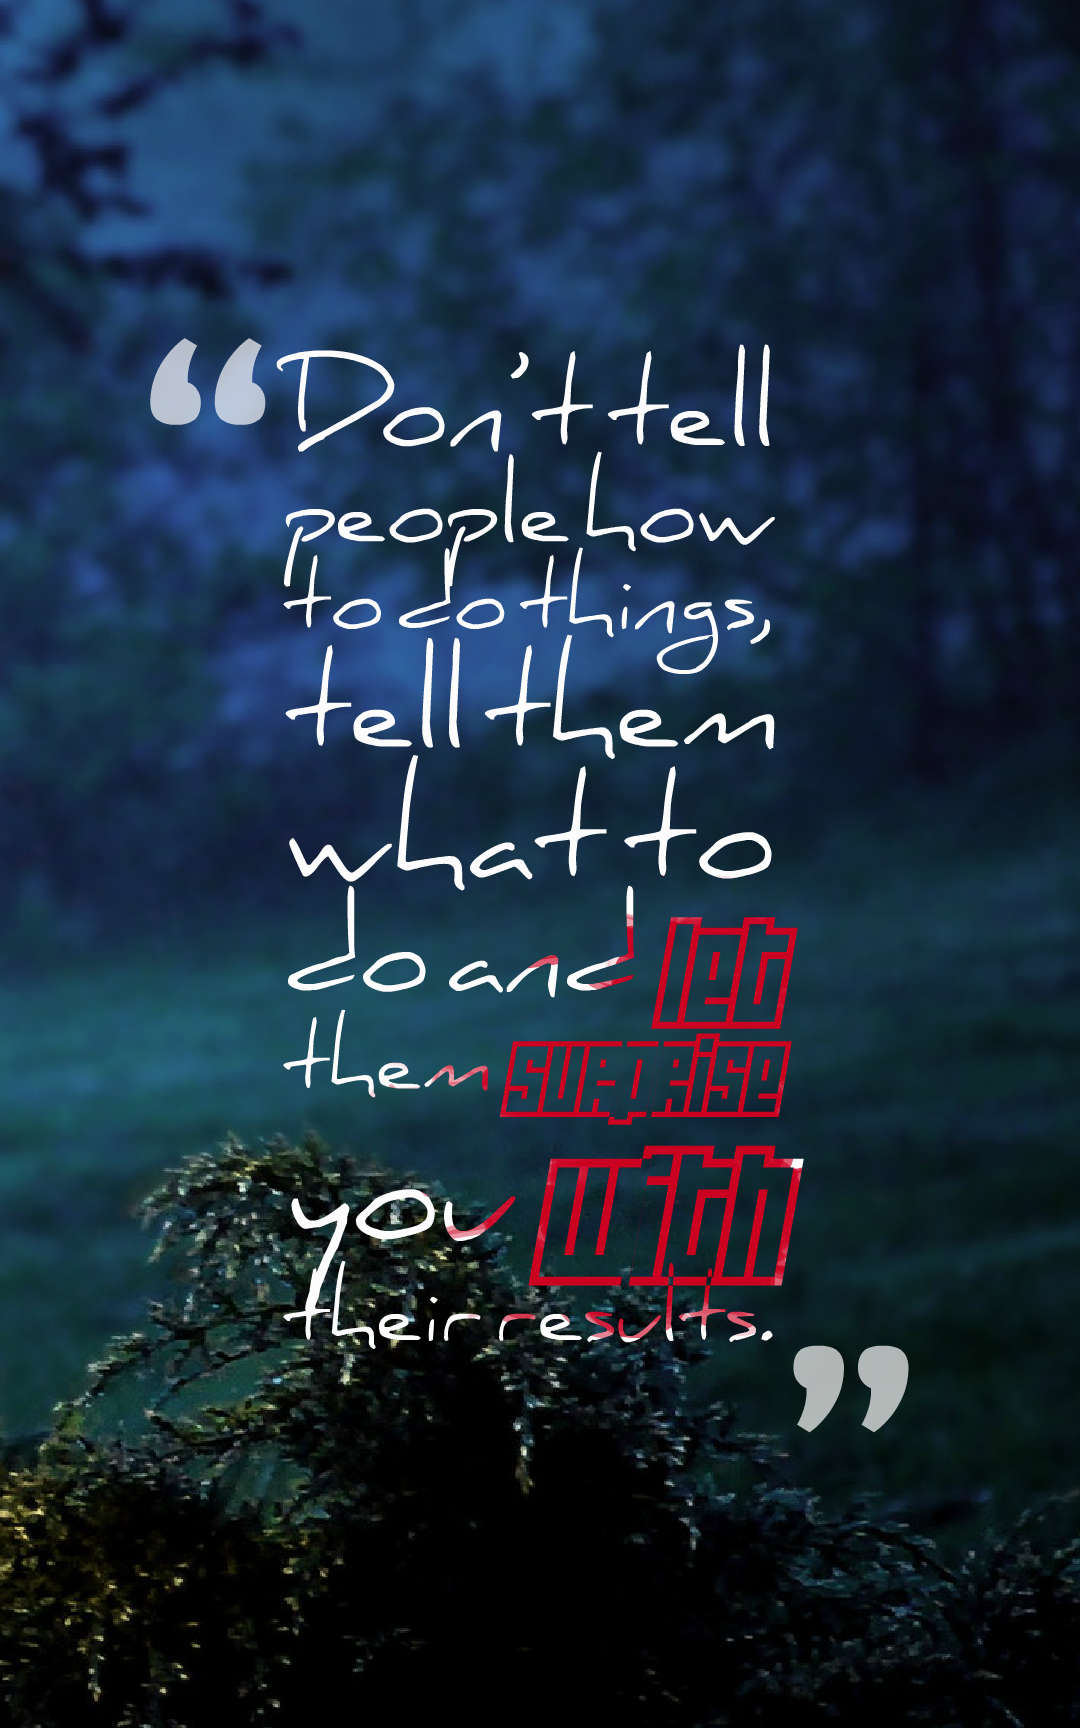 Quotes image of Don't tell people how to do things, tell them what to do and let them surprise you with their results.